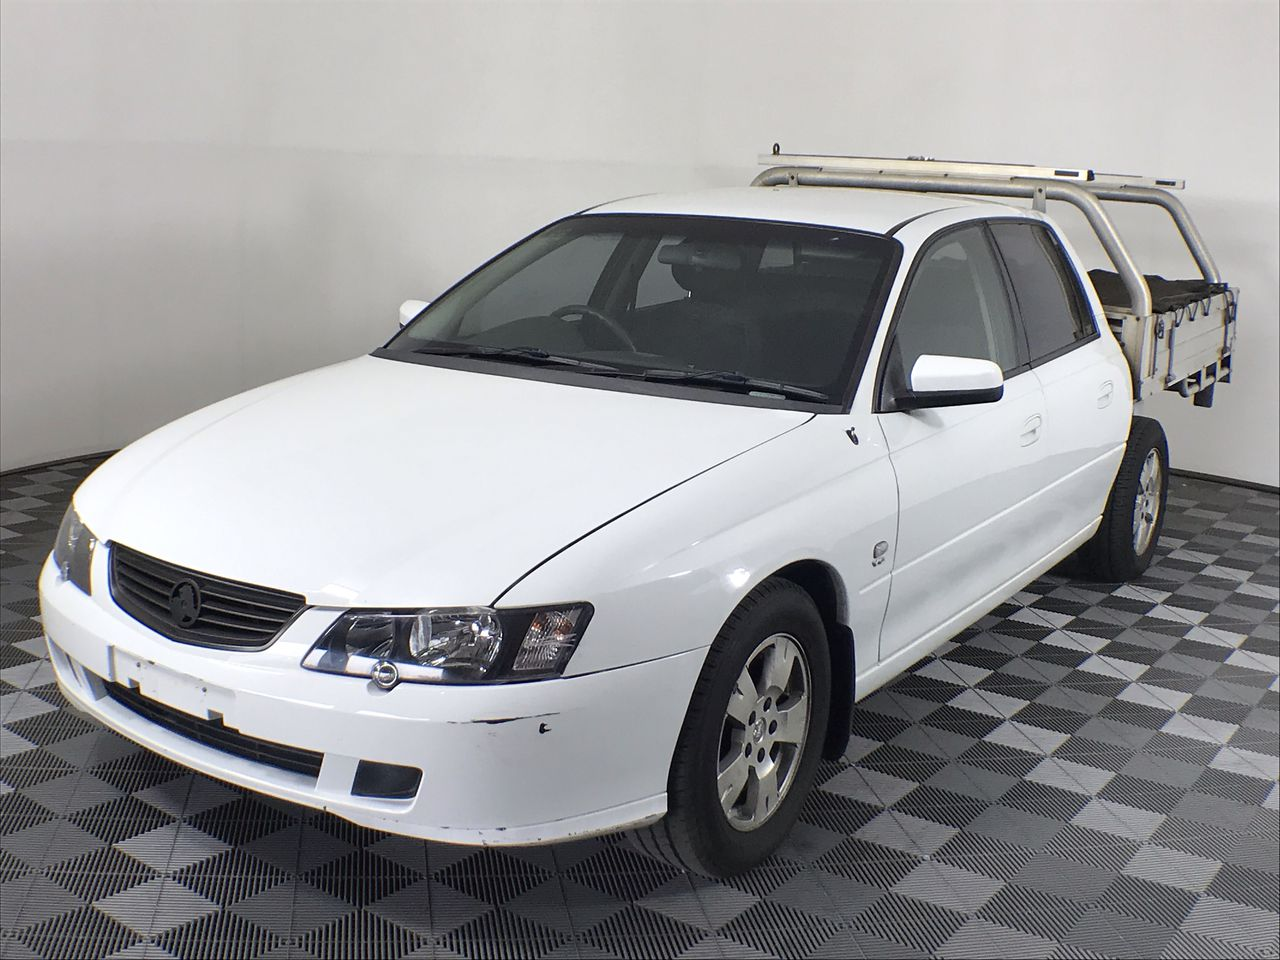 2004 Holden Crewman S VYII Auto Dual Cab- Alloy Tray